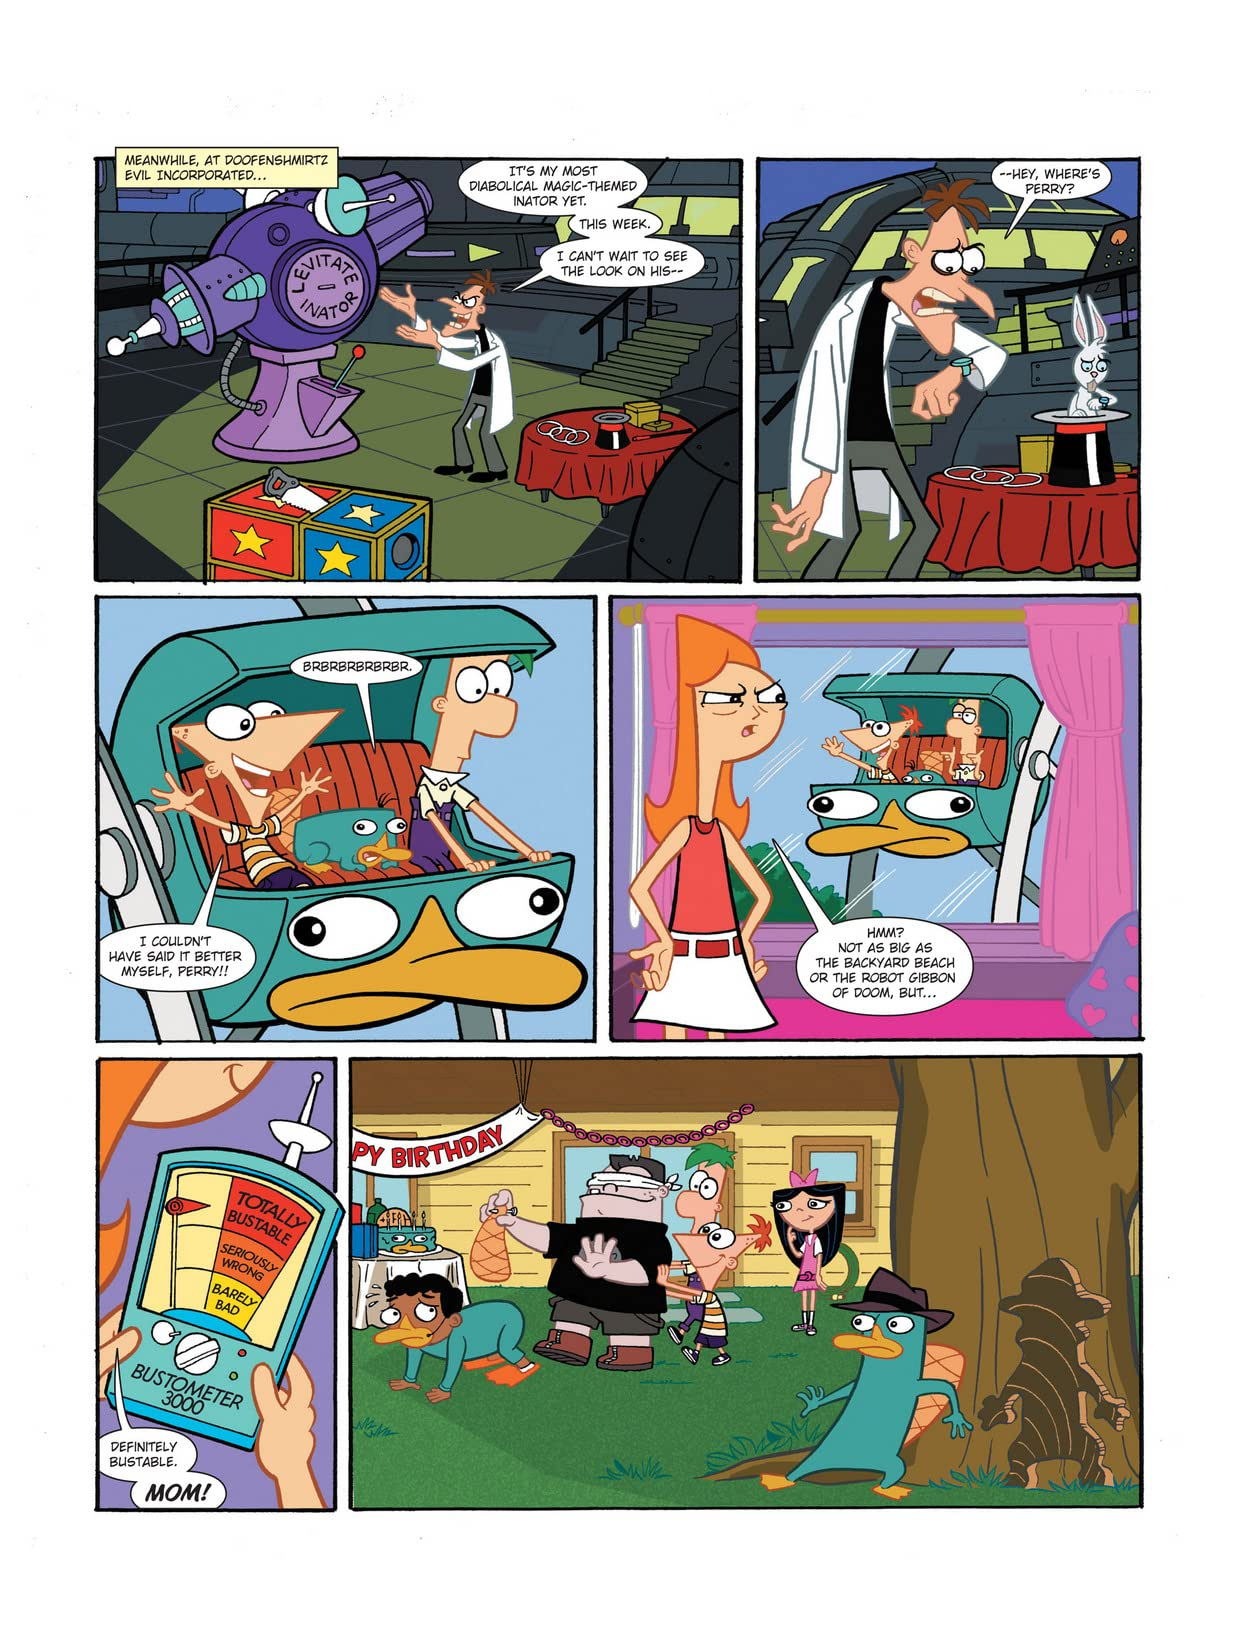 Phineas and Ferb #1